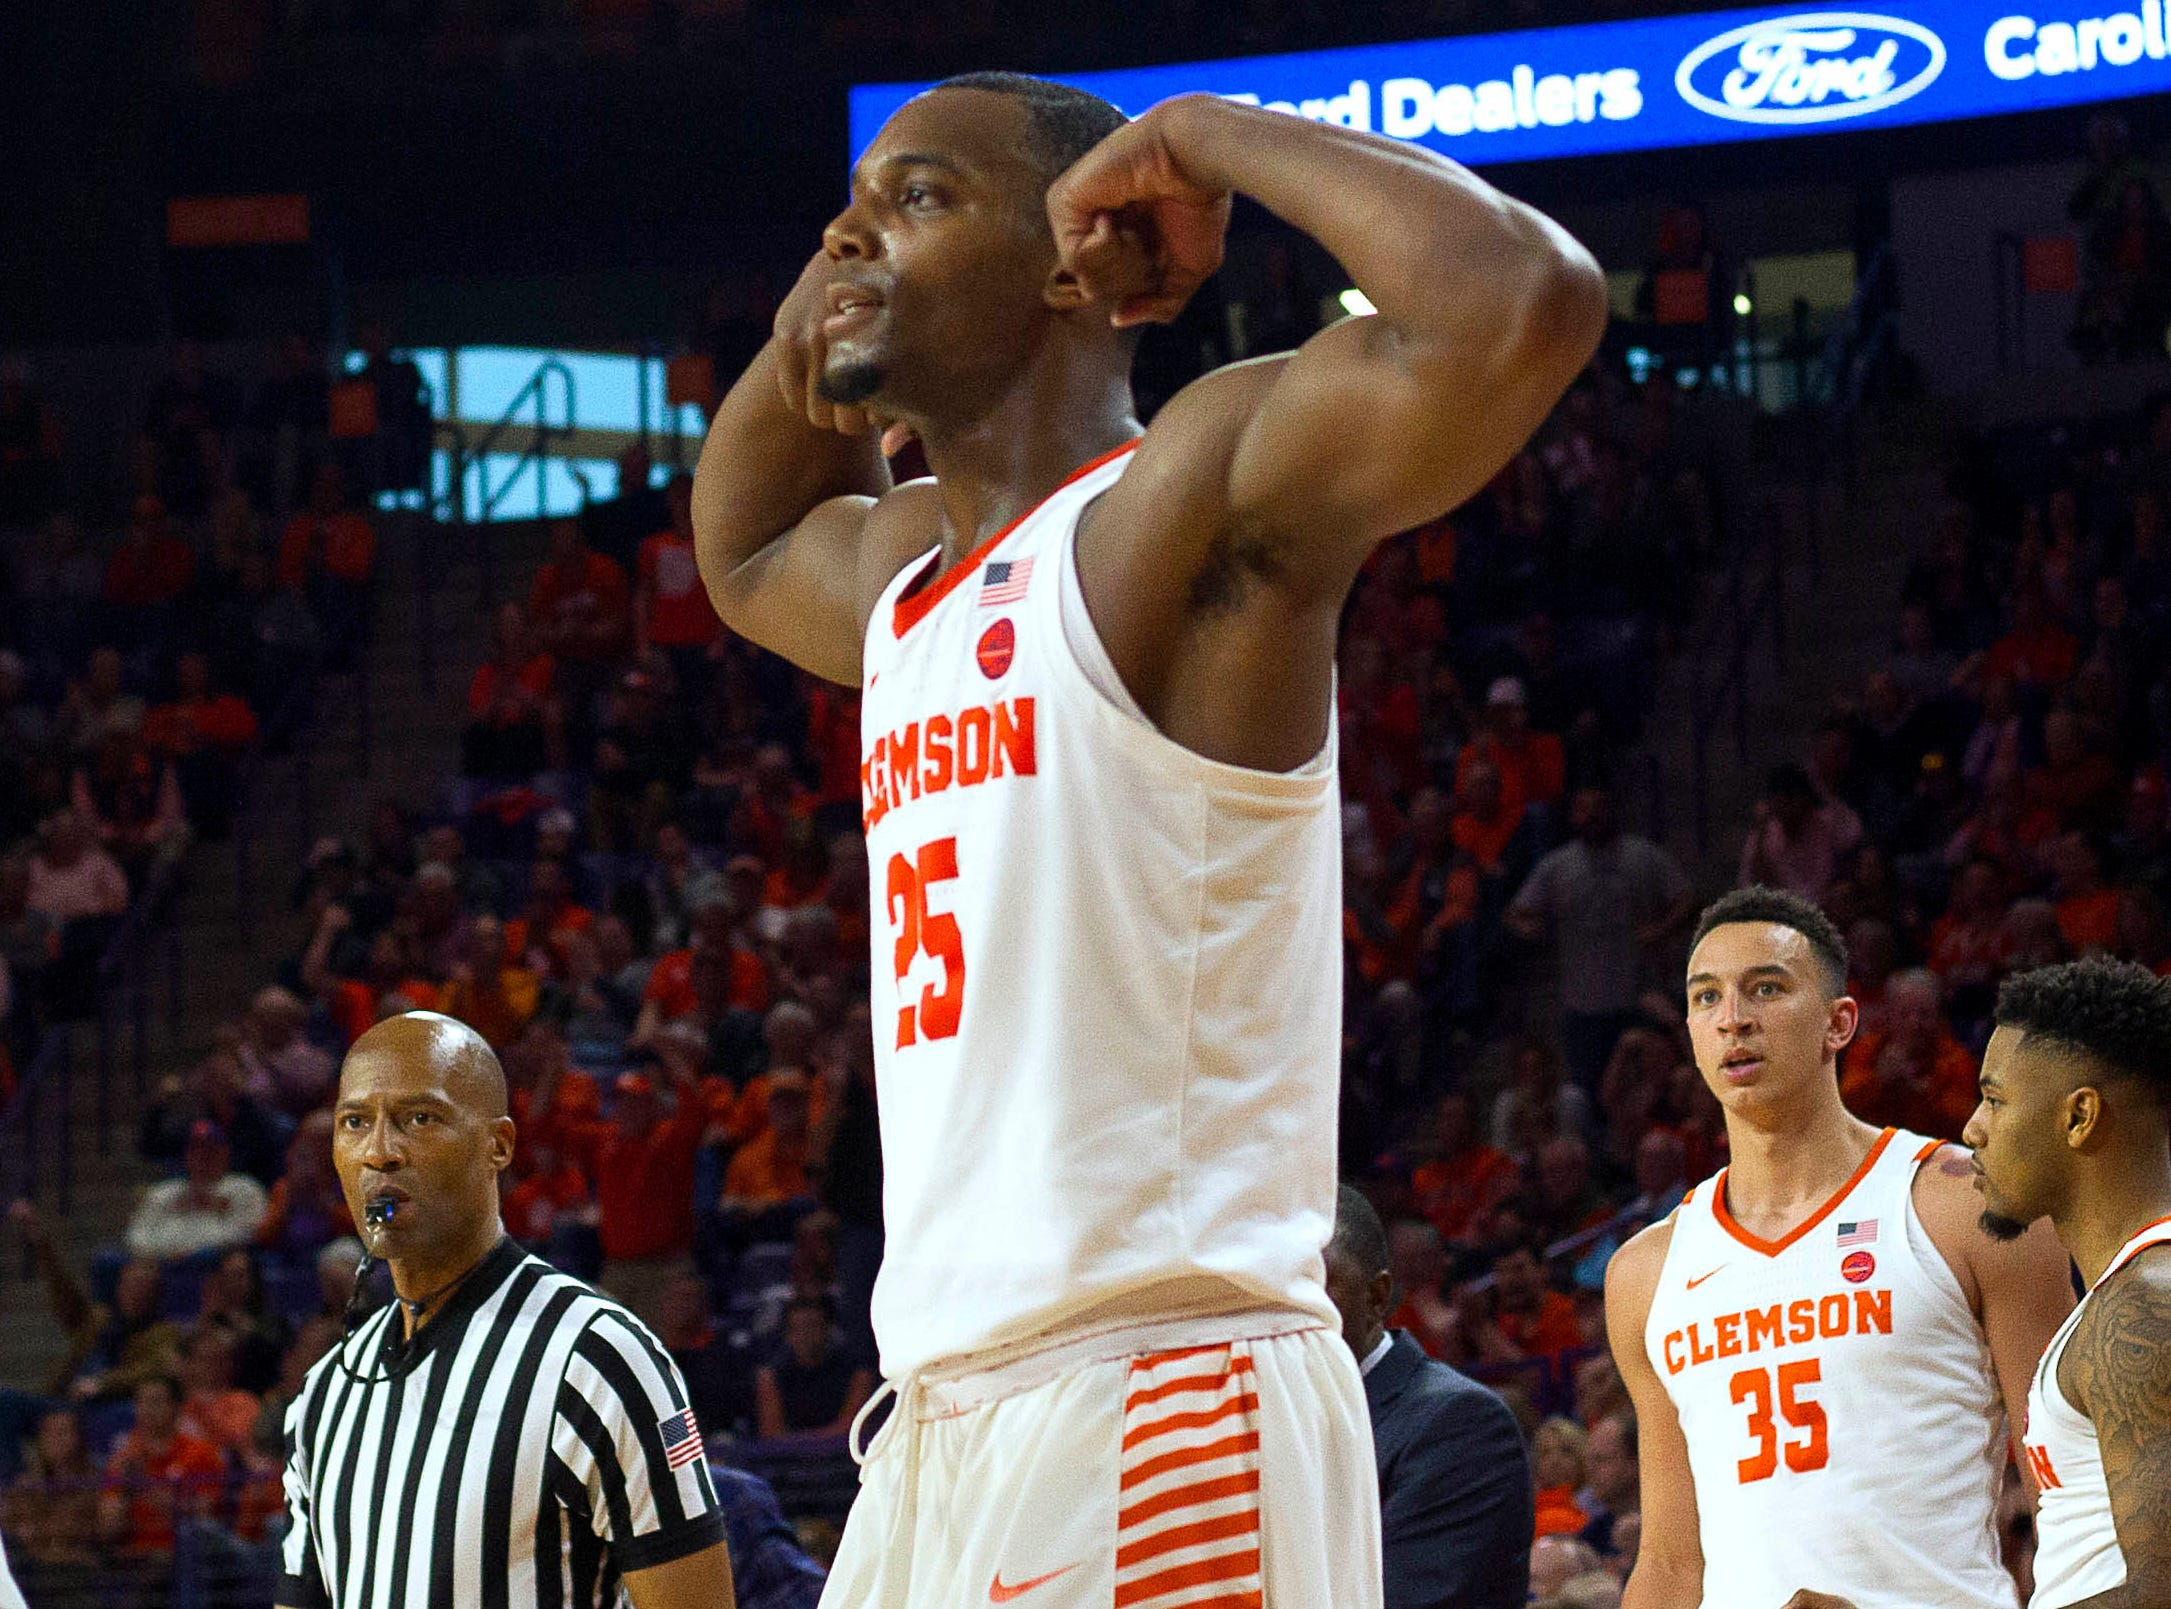 Clemson forward Elijah Thomas celebrates a big second-half bucket.